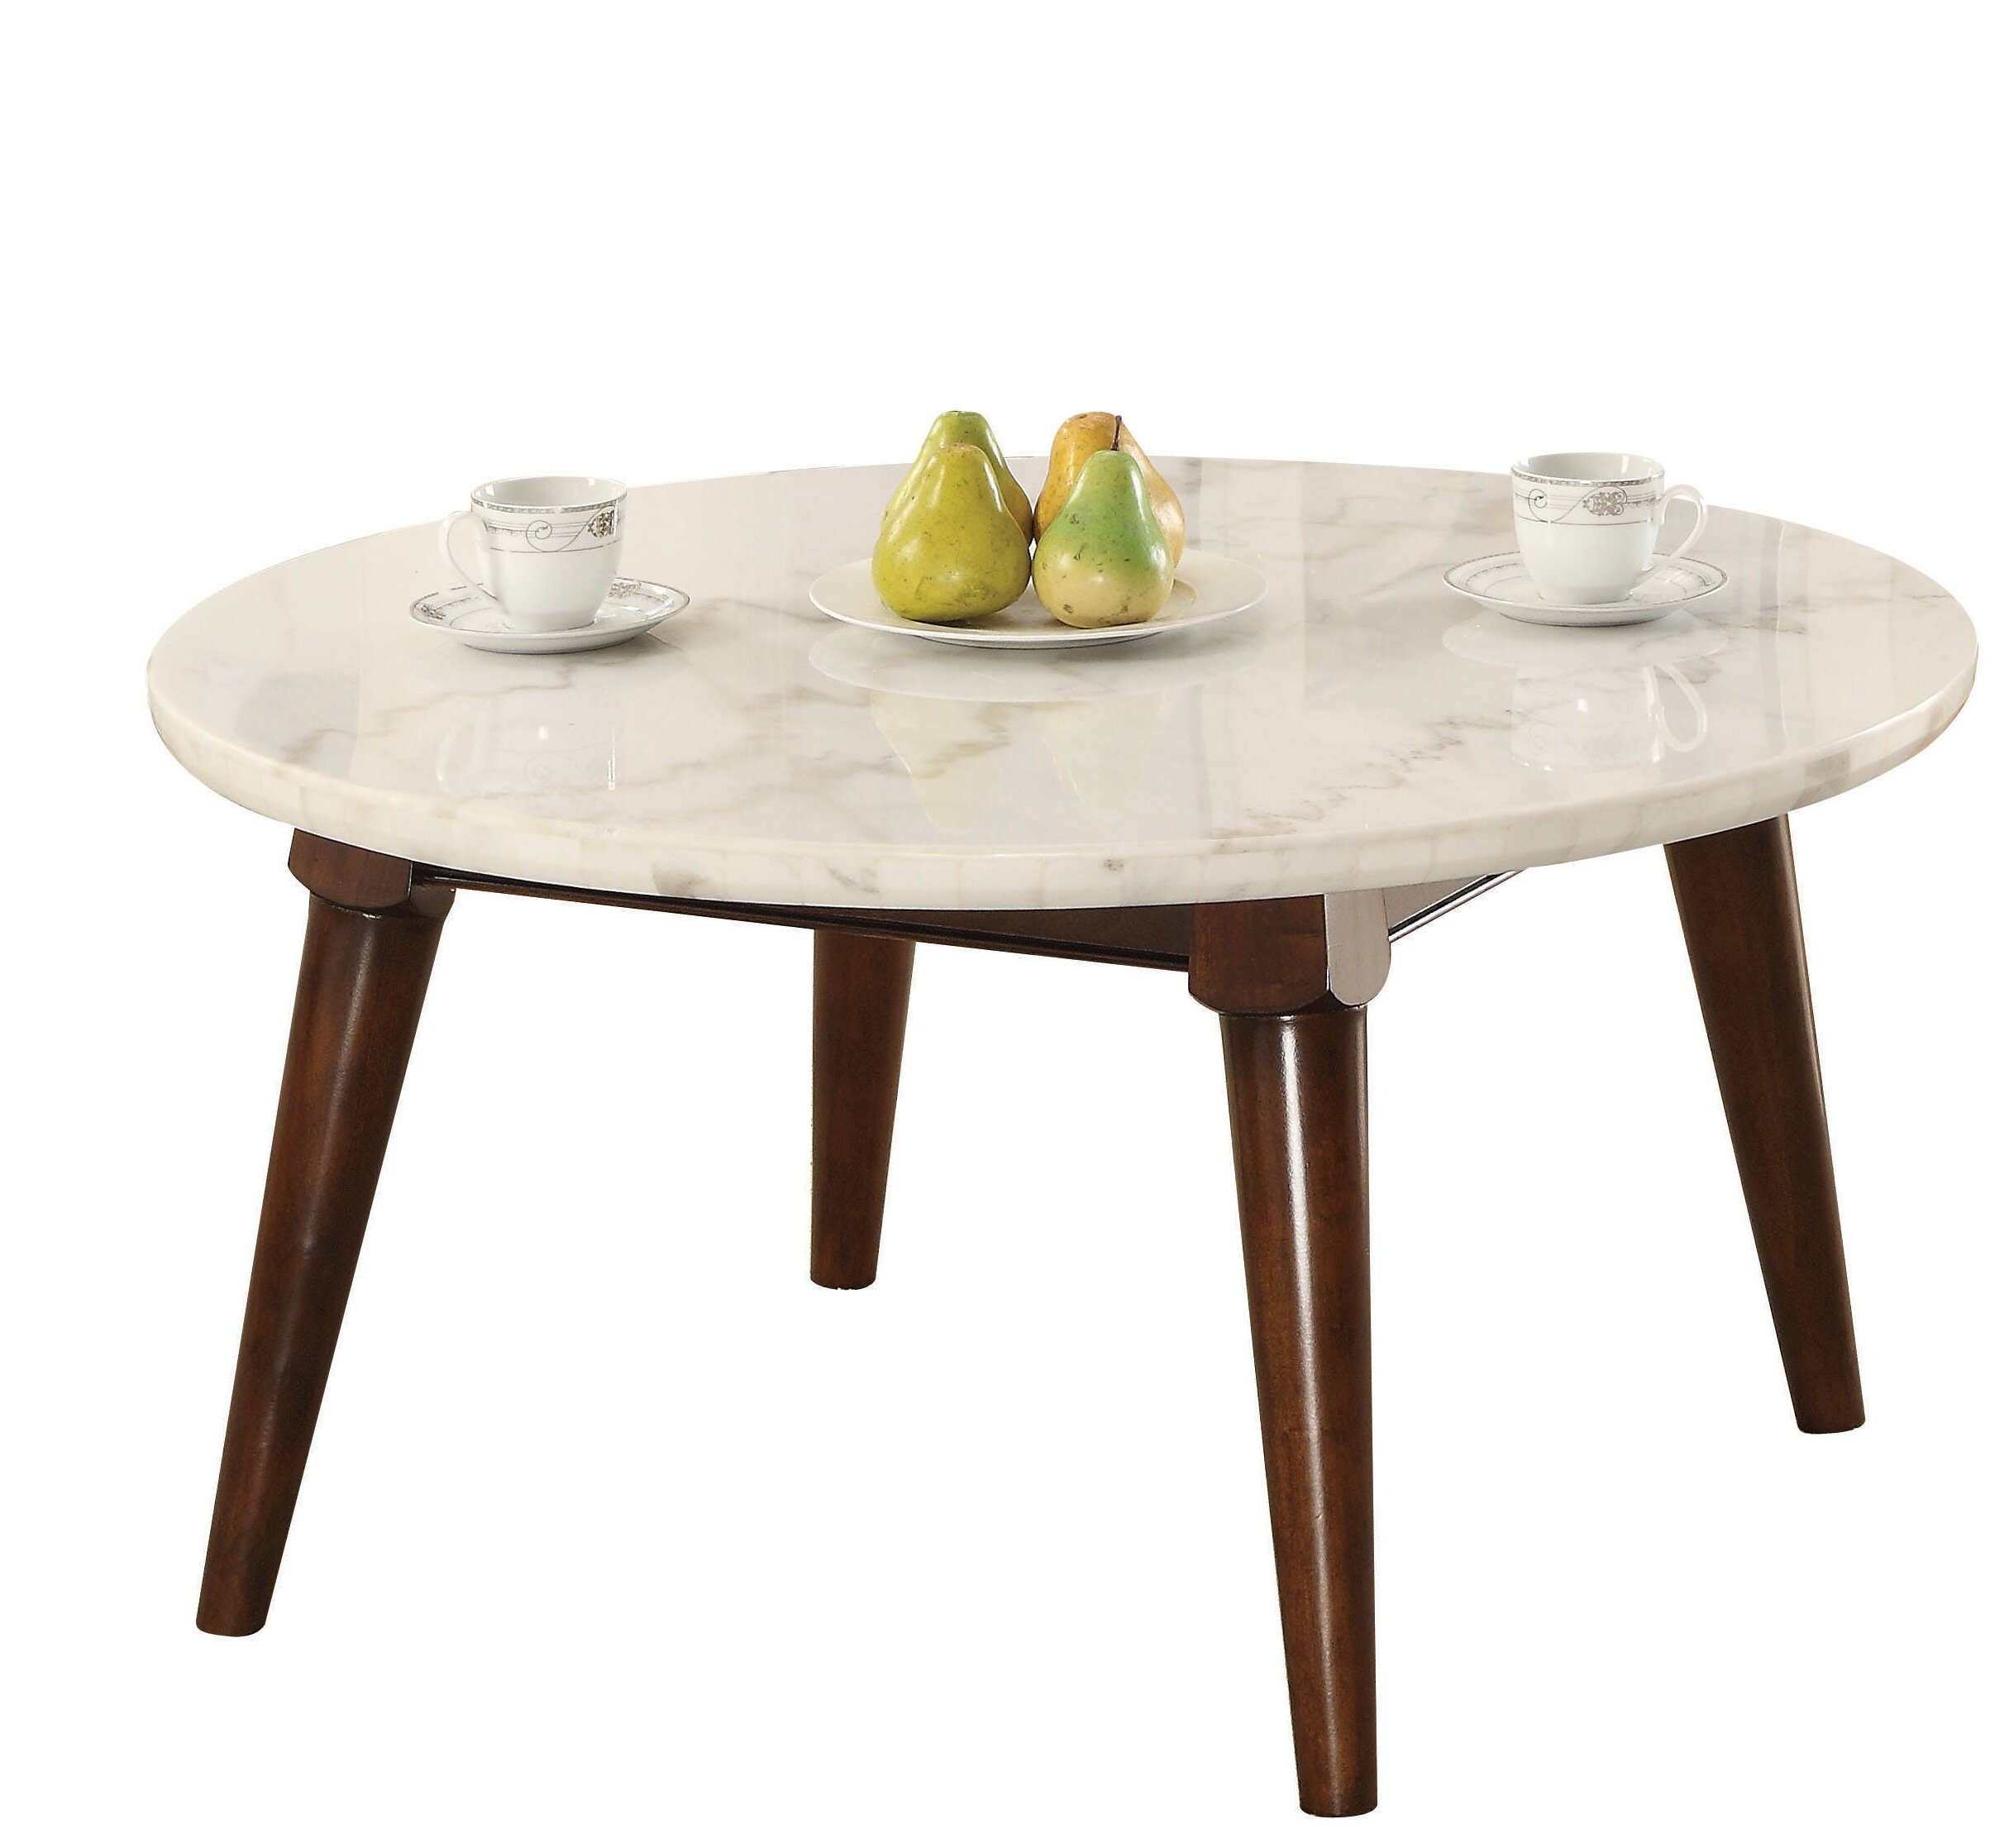 Picture of: Ivy Bronx Calderdale Marble Top Wood Base Coffee Table Reviews Wayfair